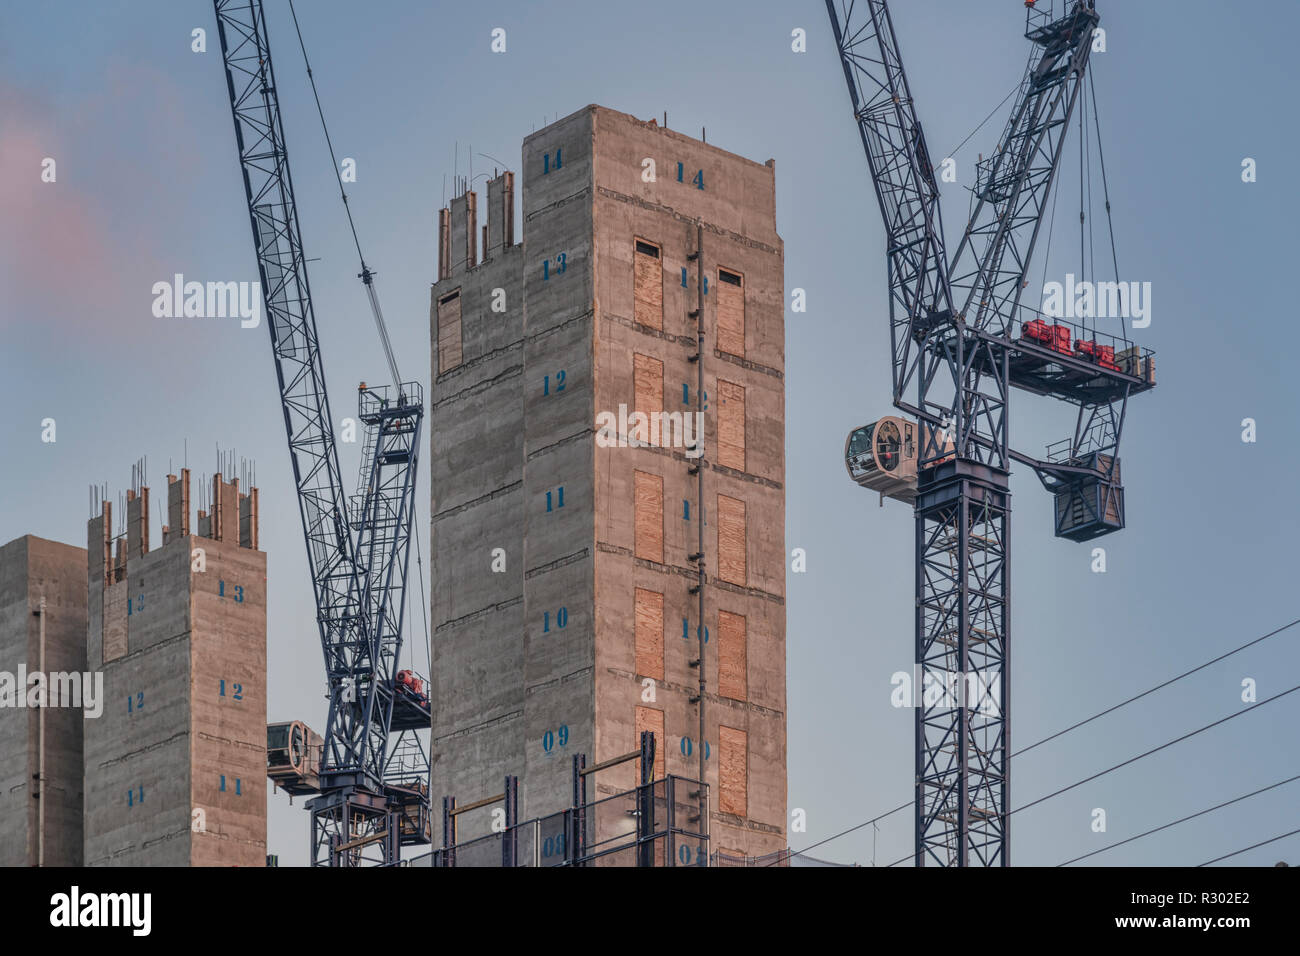 Construction site with concrete core and two tower cranes - Stock Image